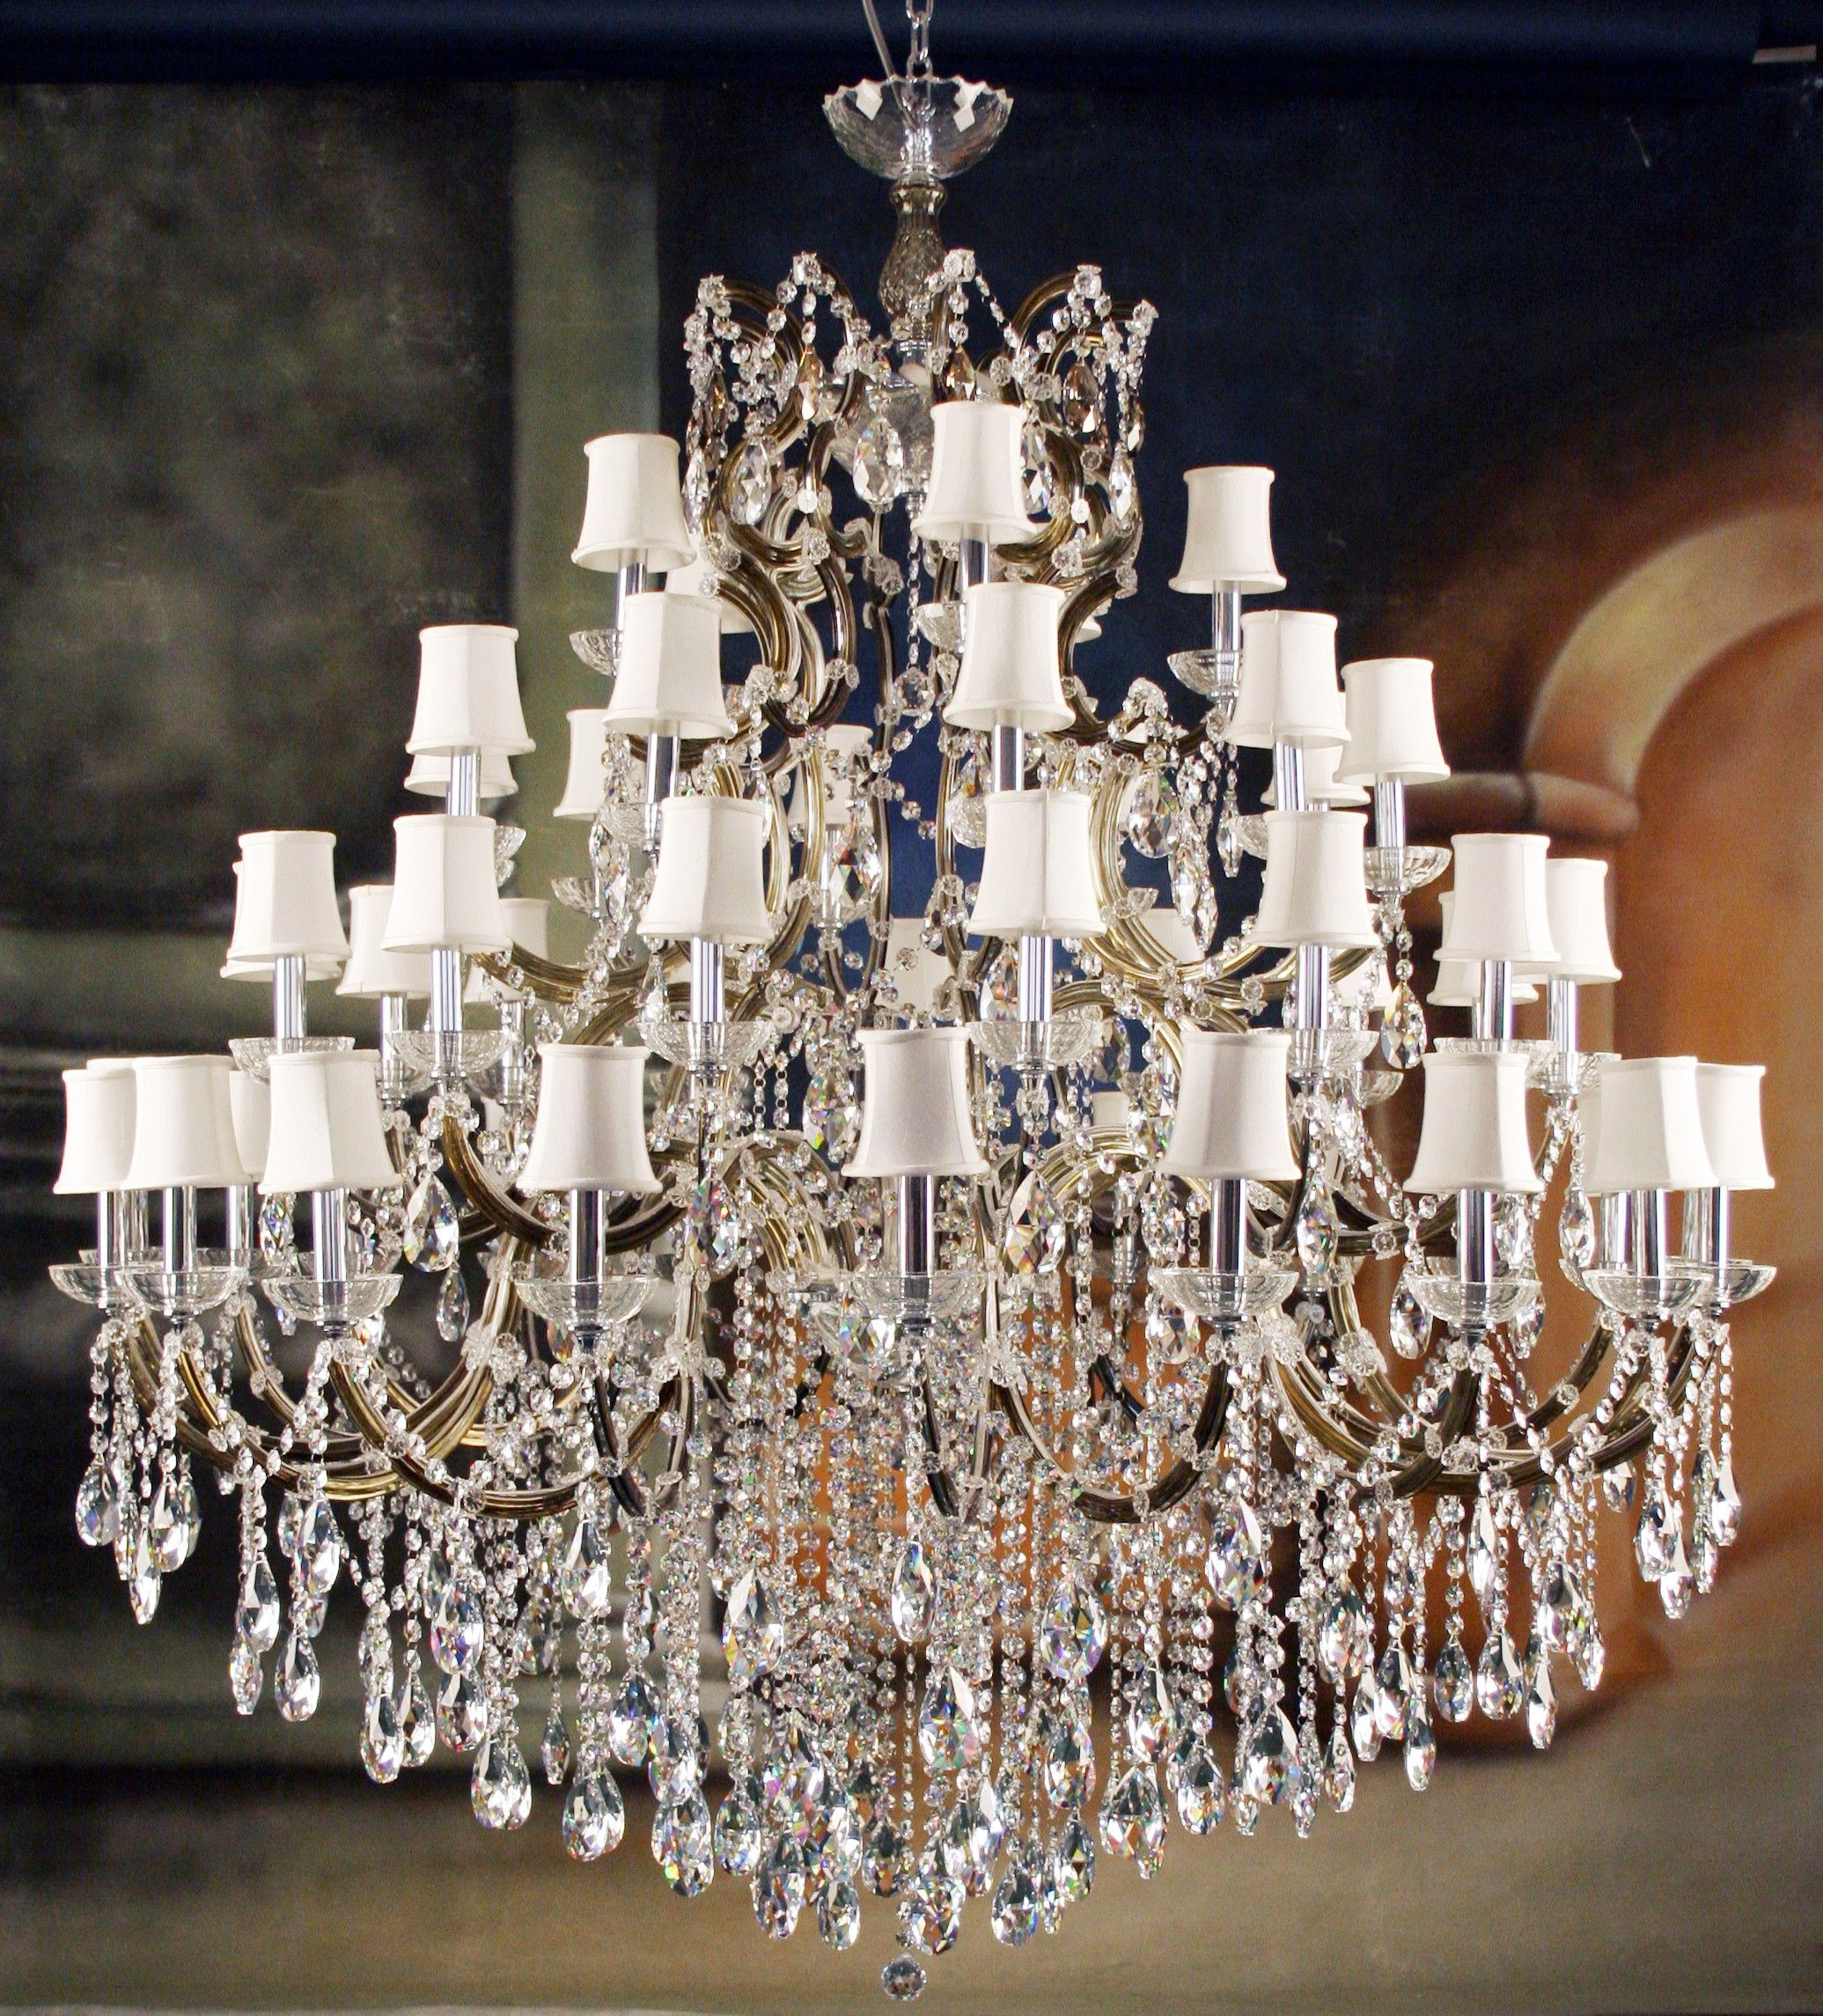 Impressive Unique Crystal Chandeliers Designer Lighting Unique